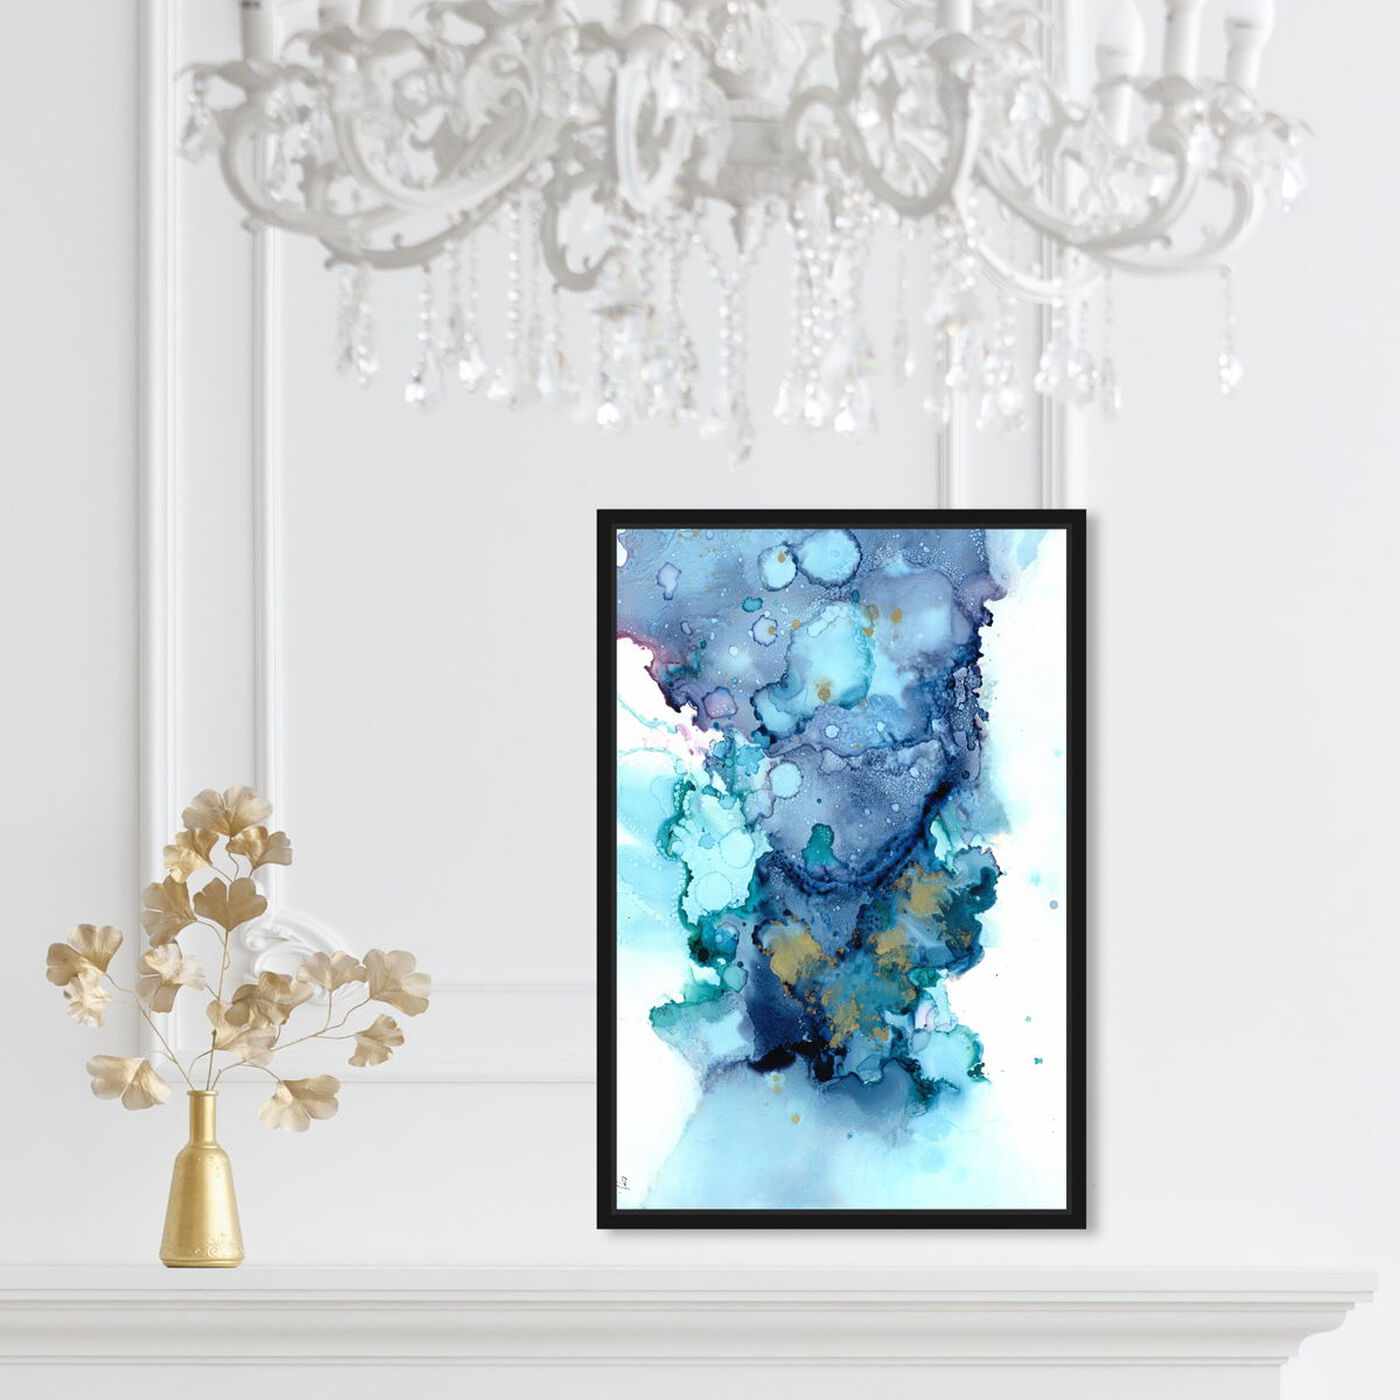 Hanging view of Jamie Blicher - Whitney featuring abstract and watercolor art.